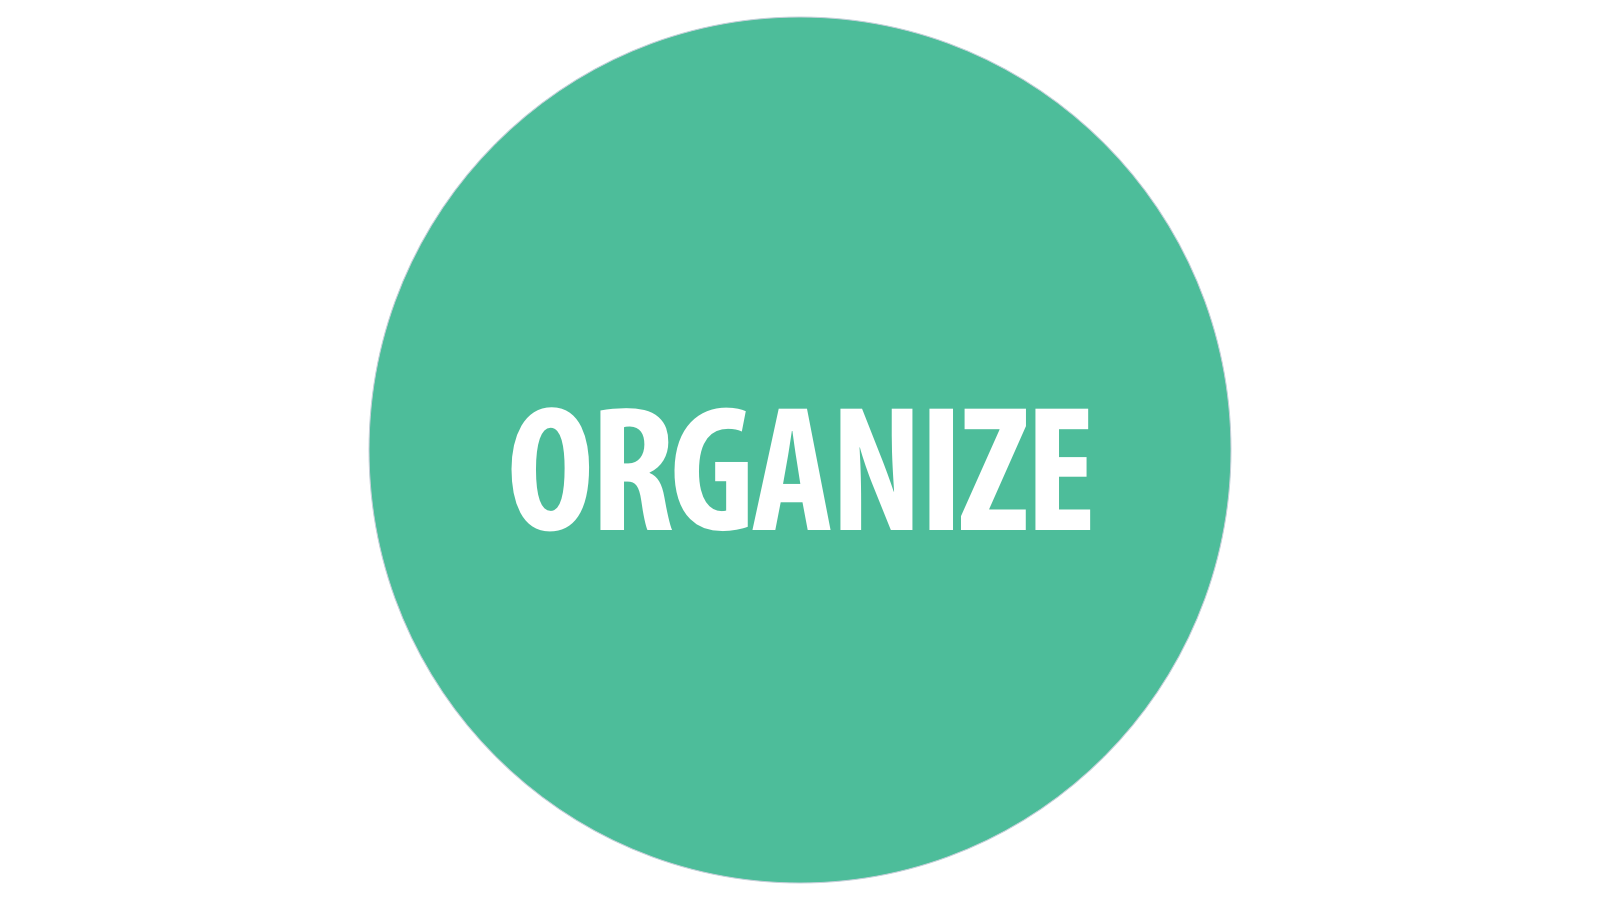 organize.png